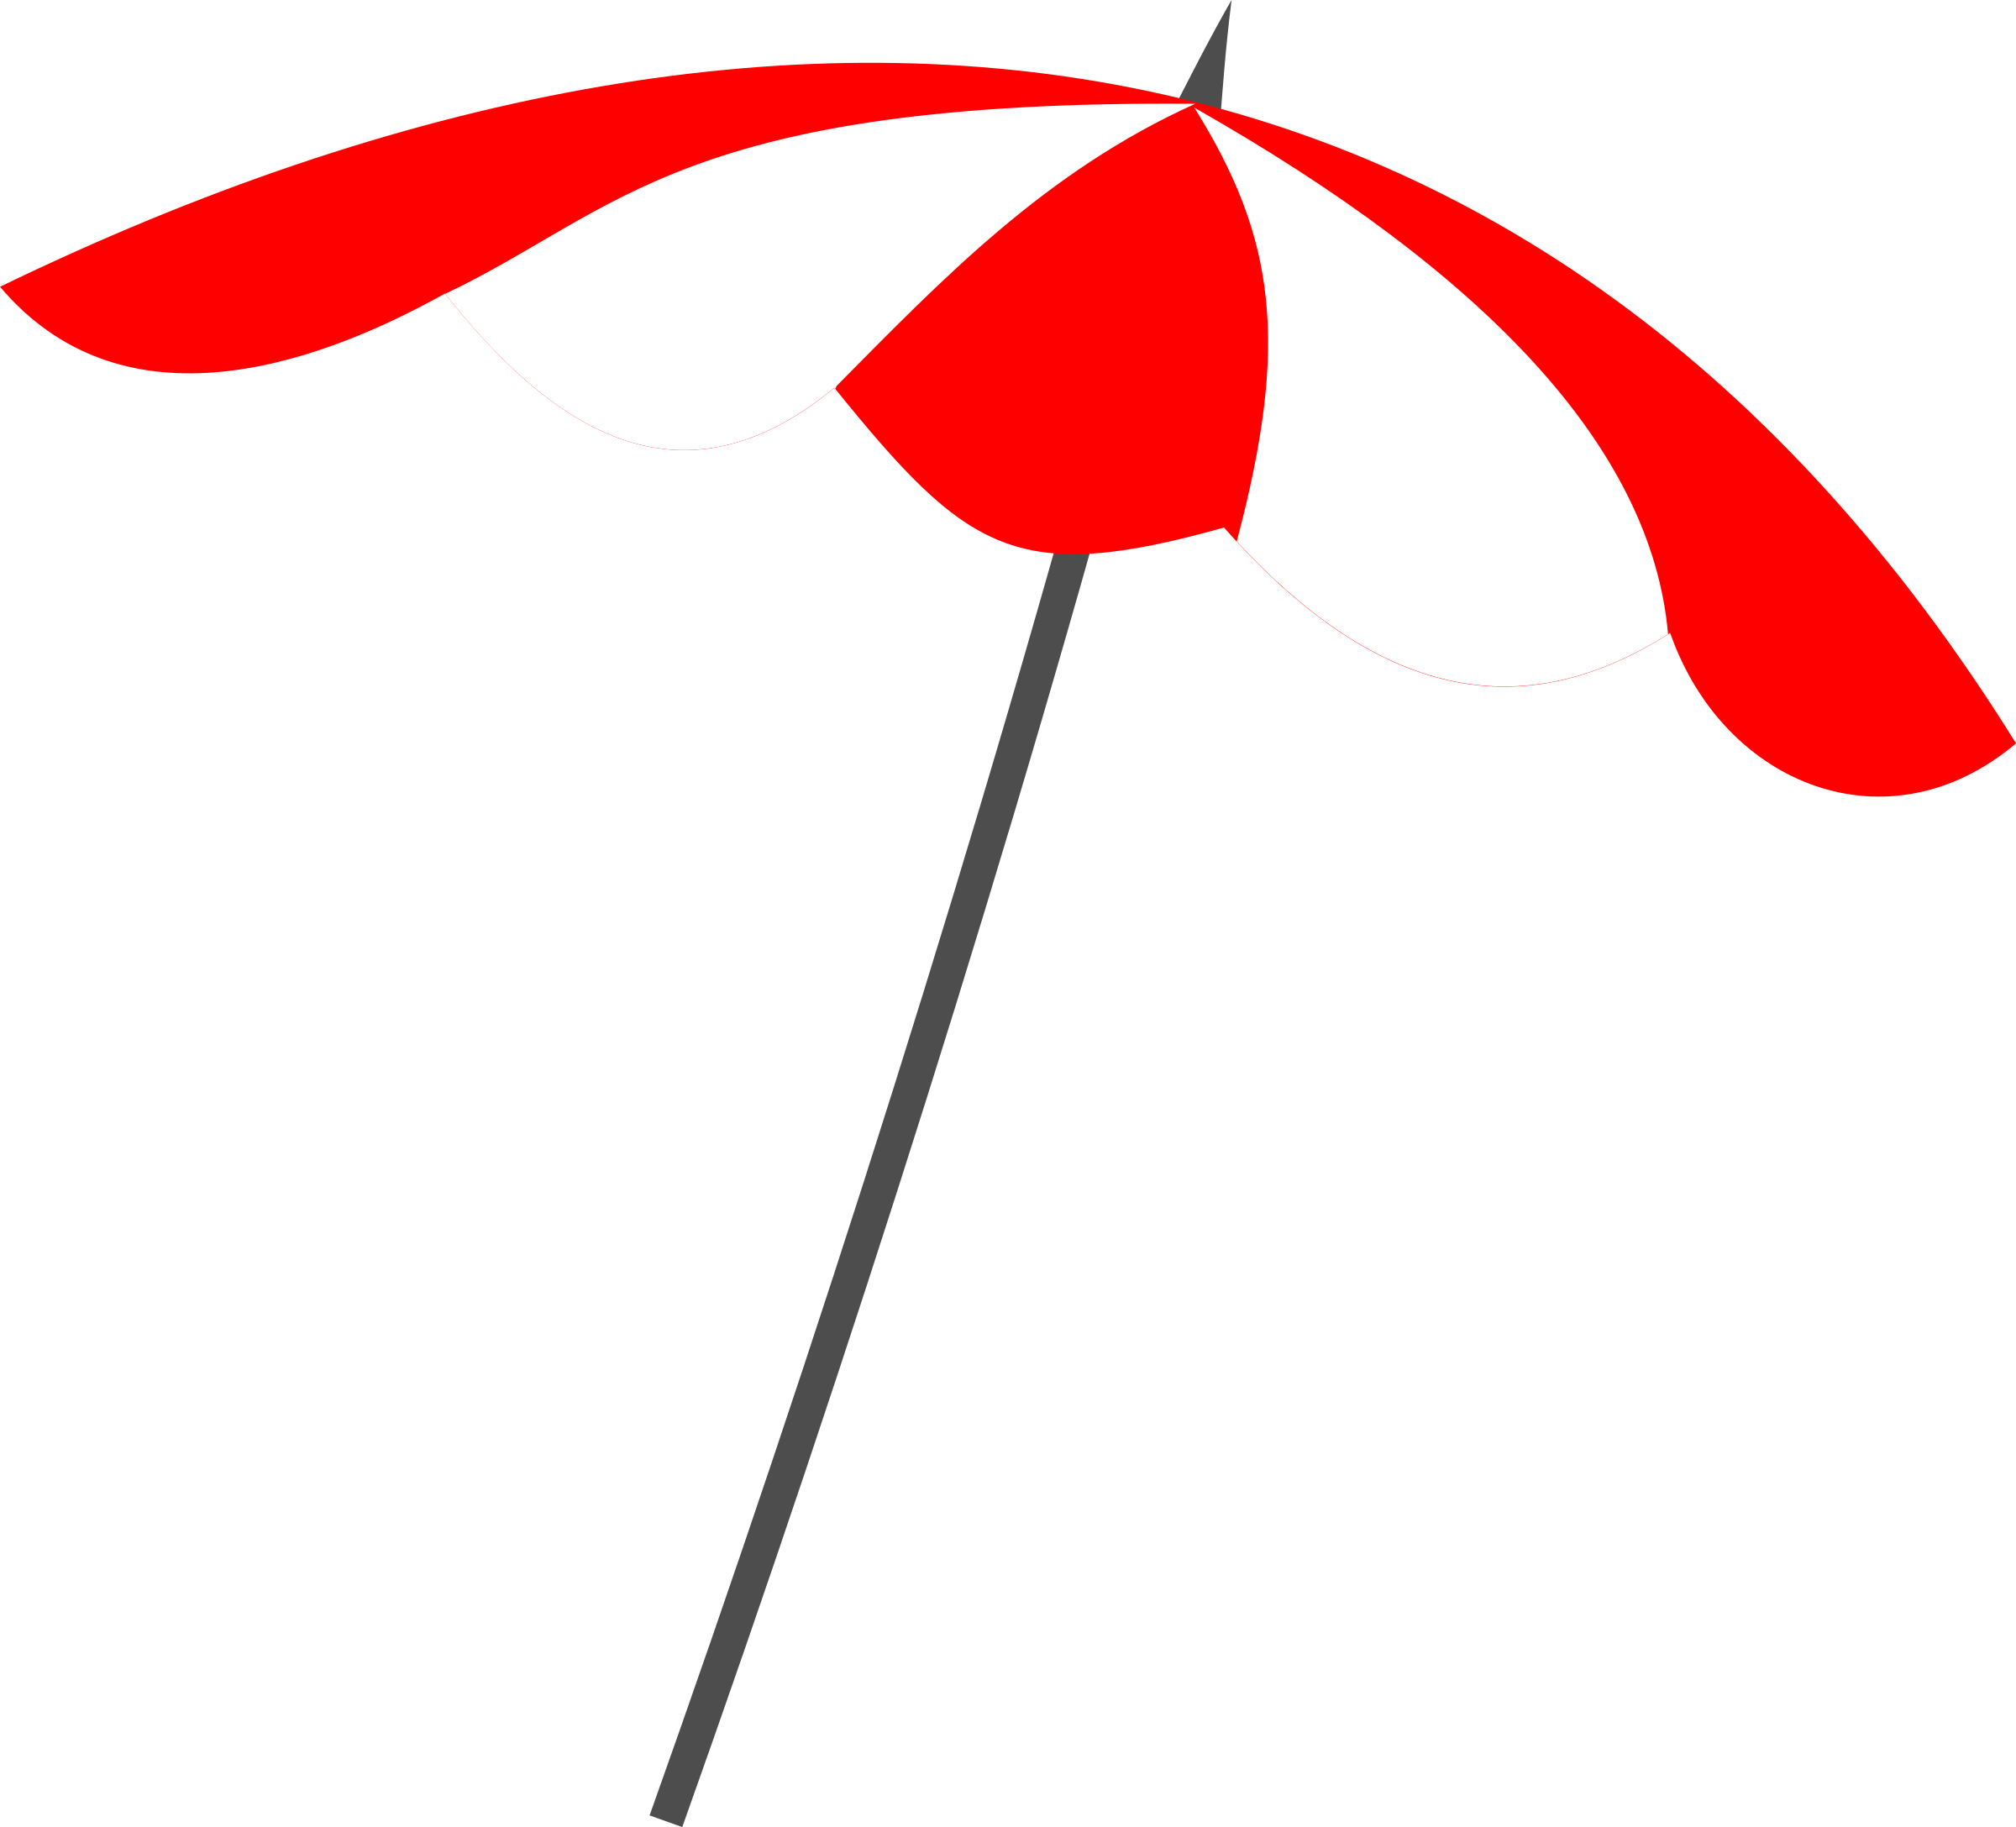 Drink umbrella png. Beach icons free and